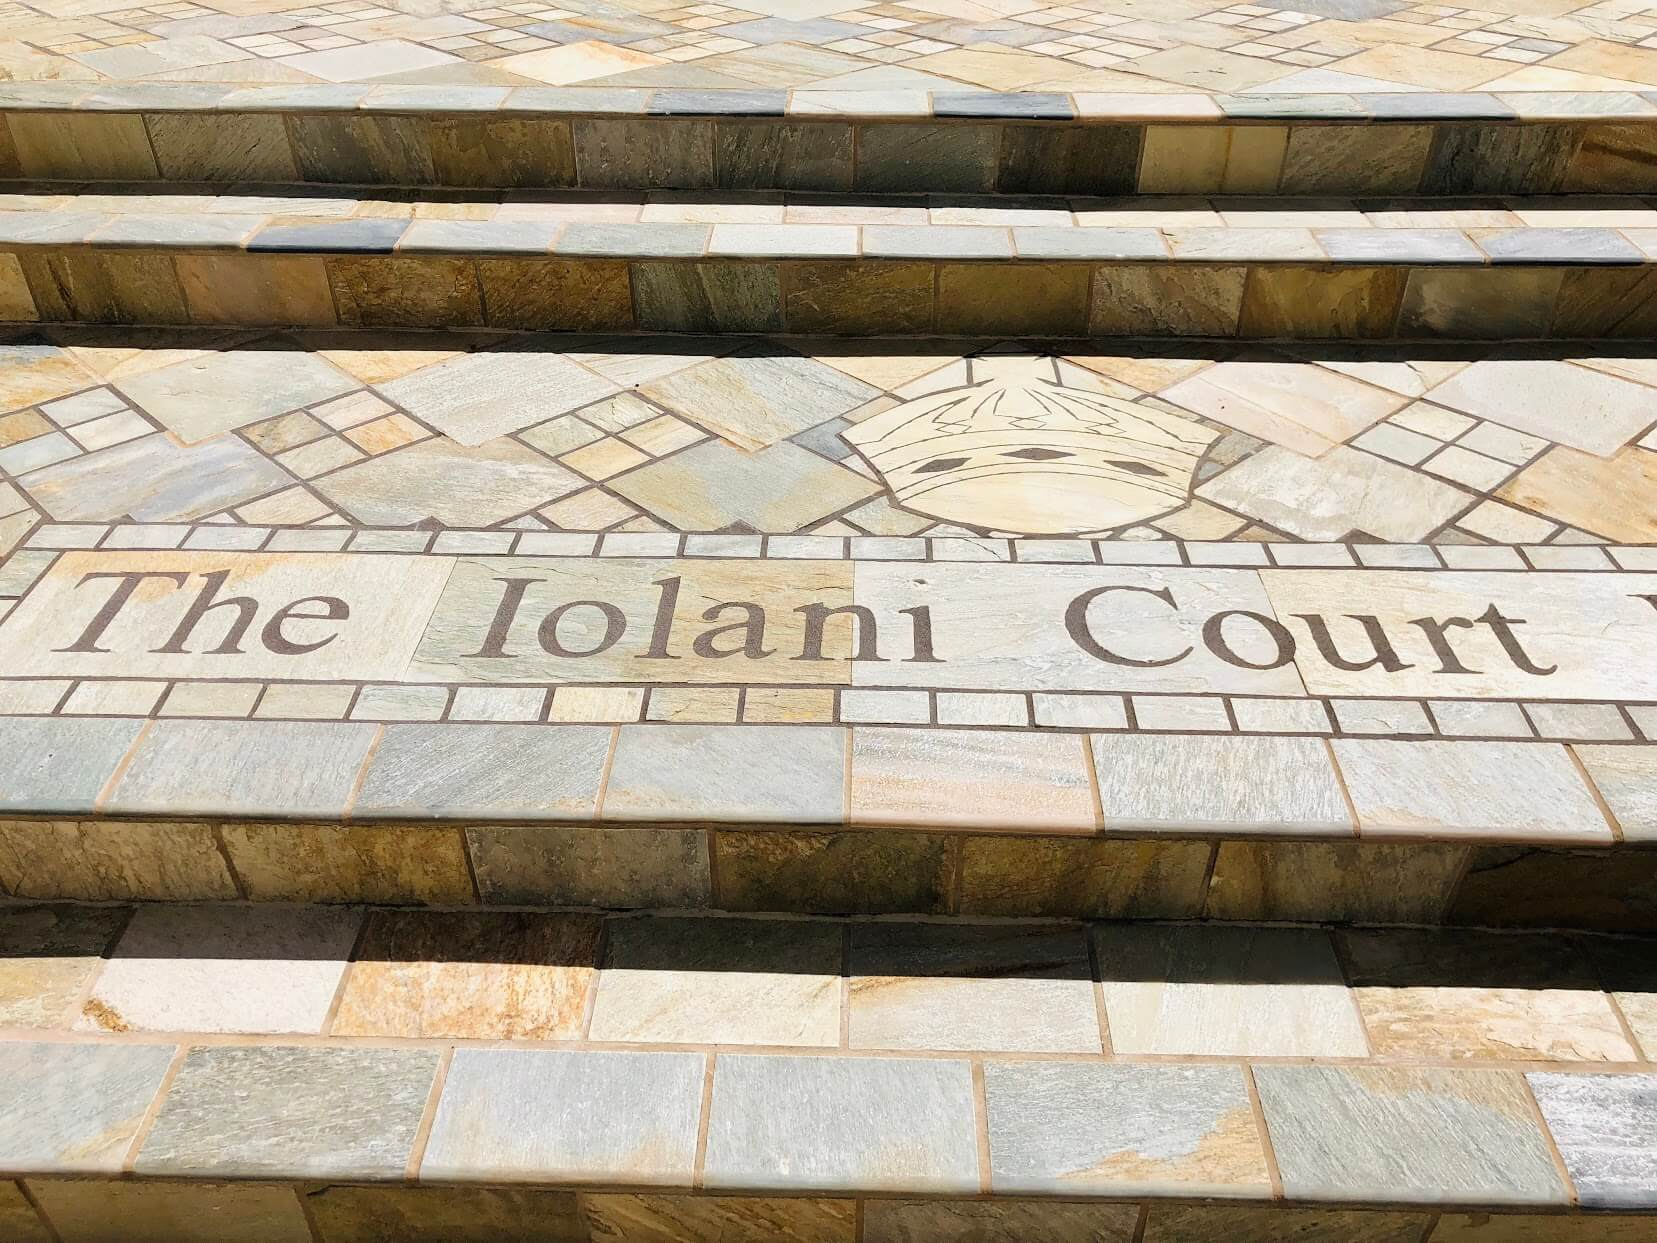 Iolani Court Plazaのロゴ